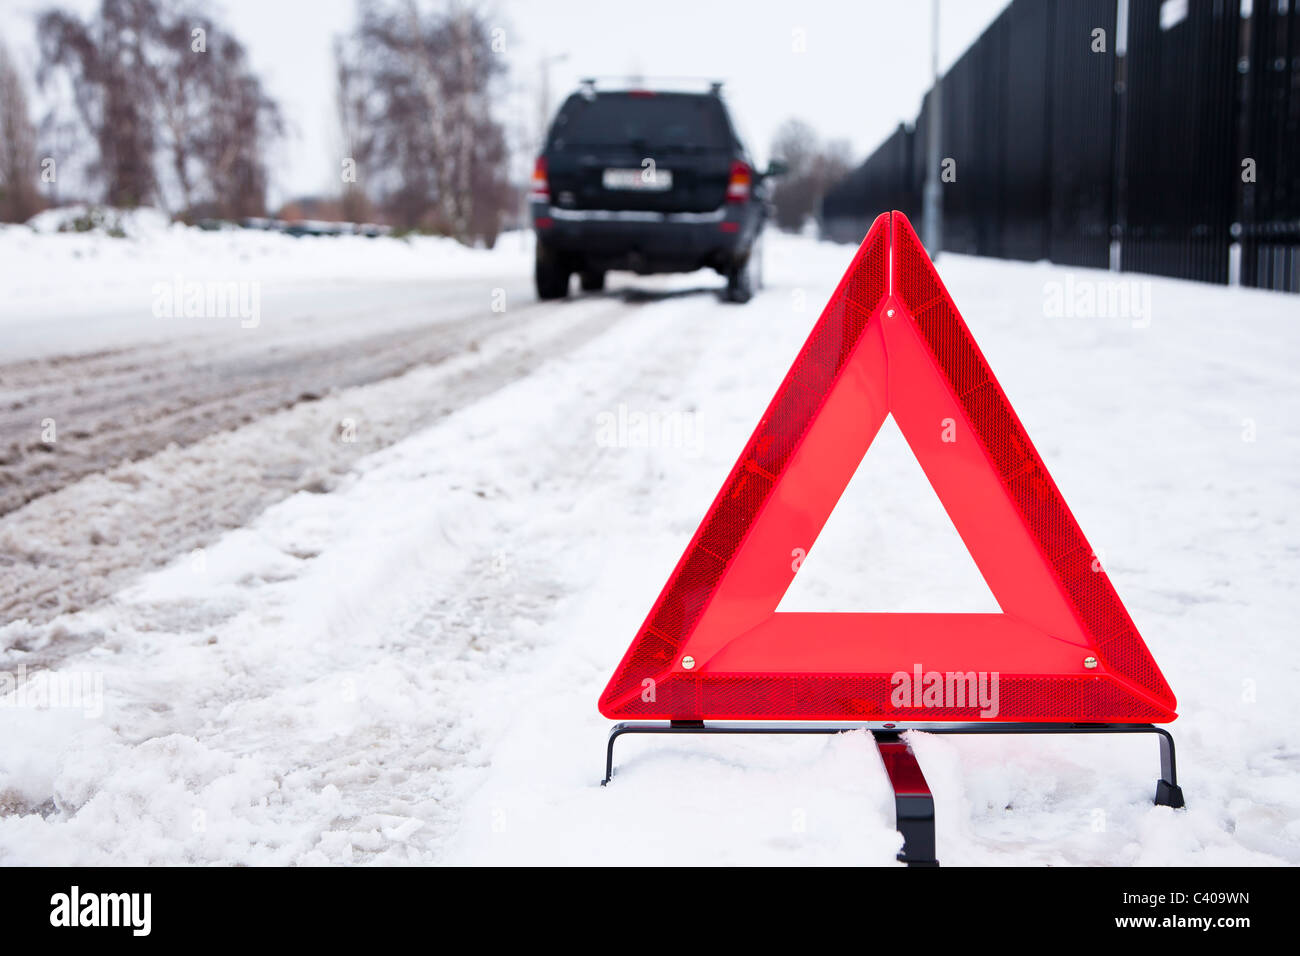 Broken car parked with a warning triangle in a snowy street - Stock Image